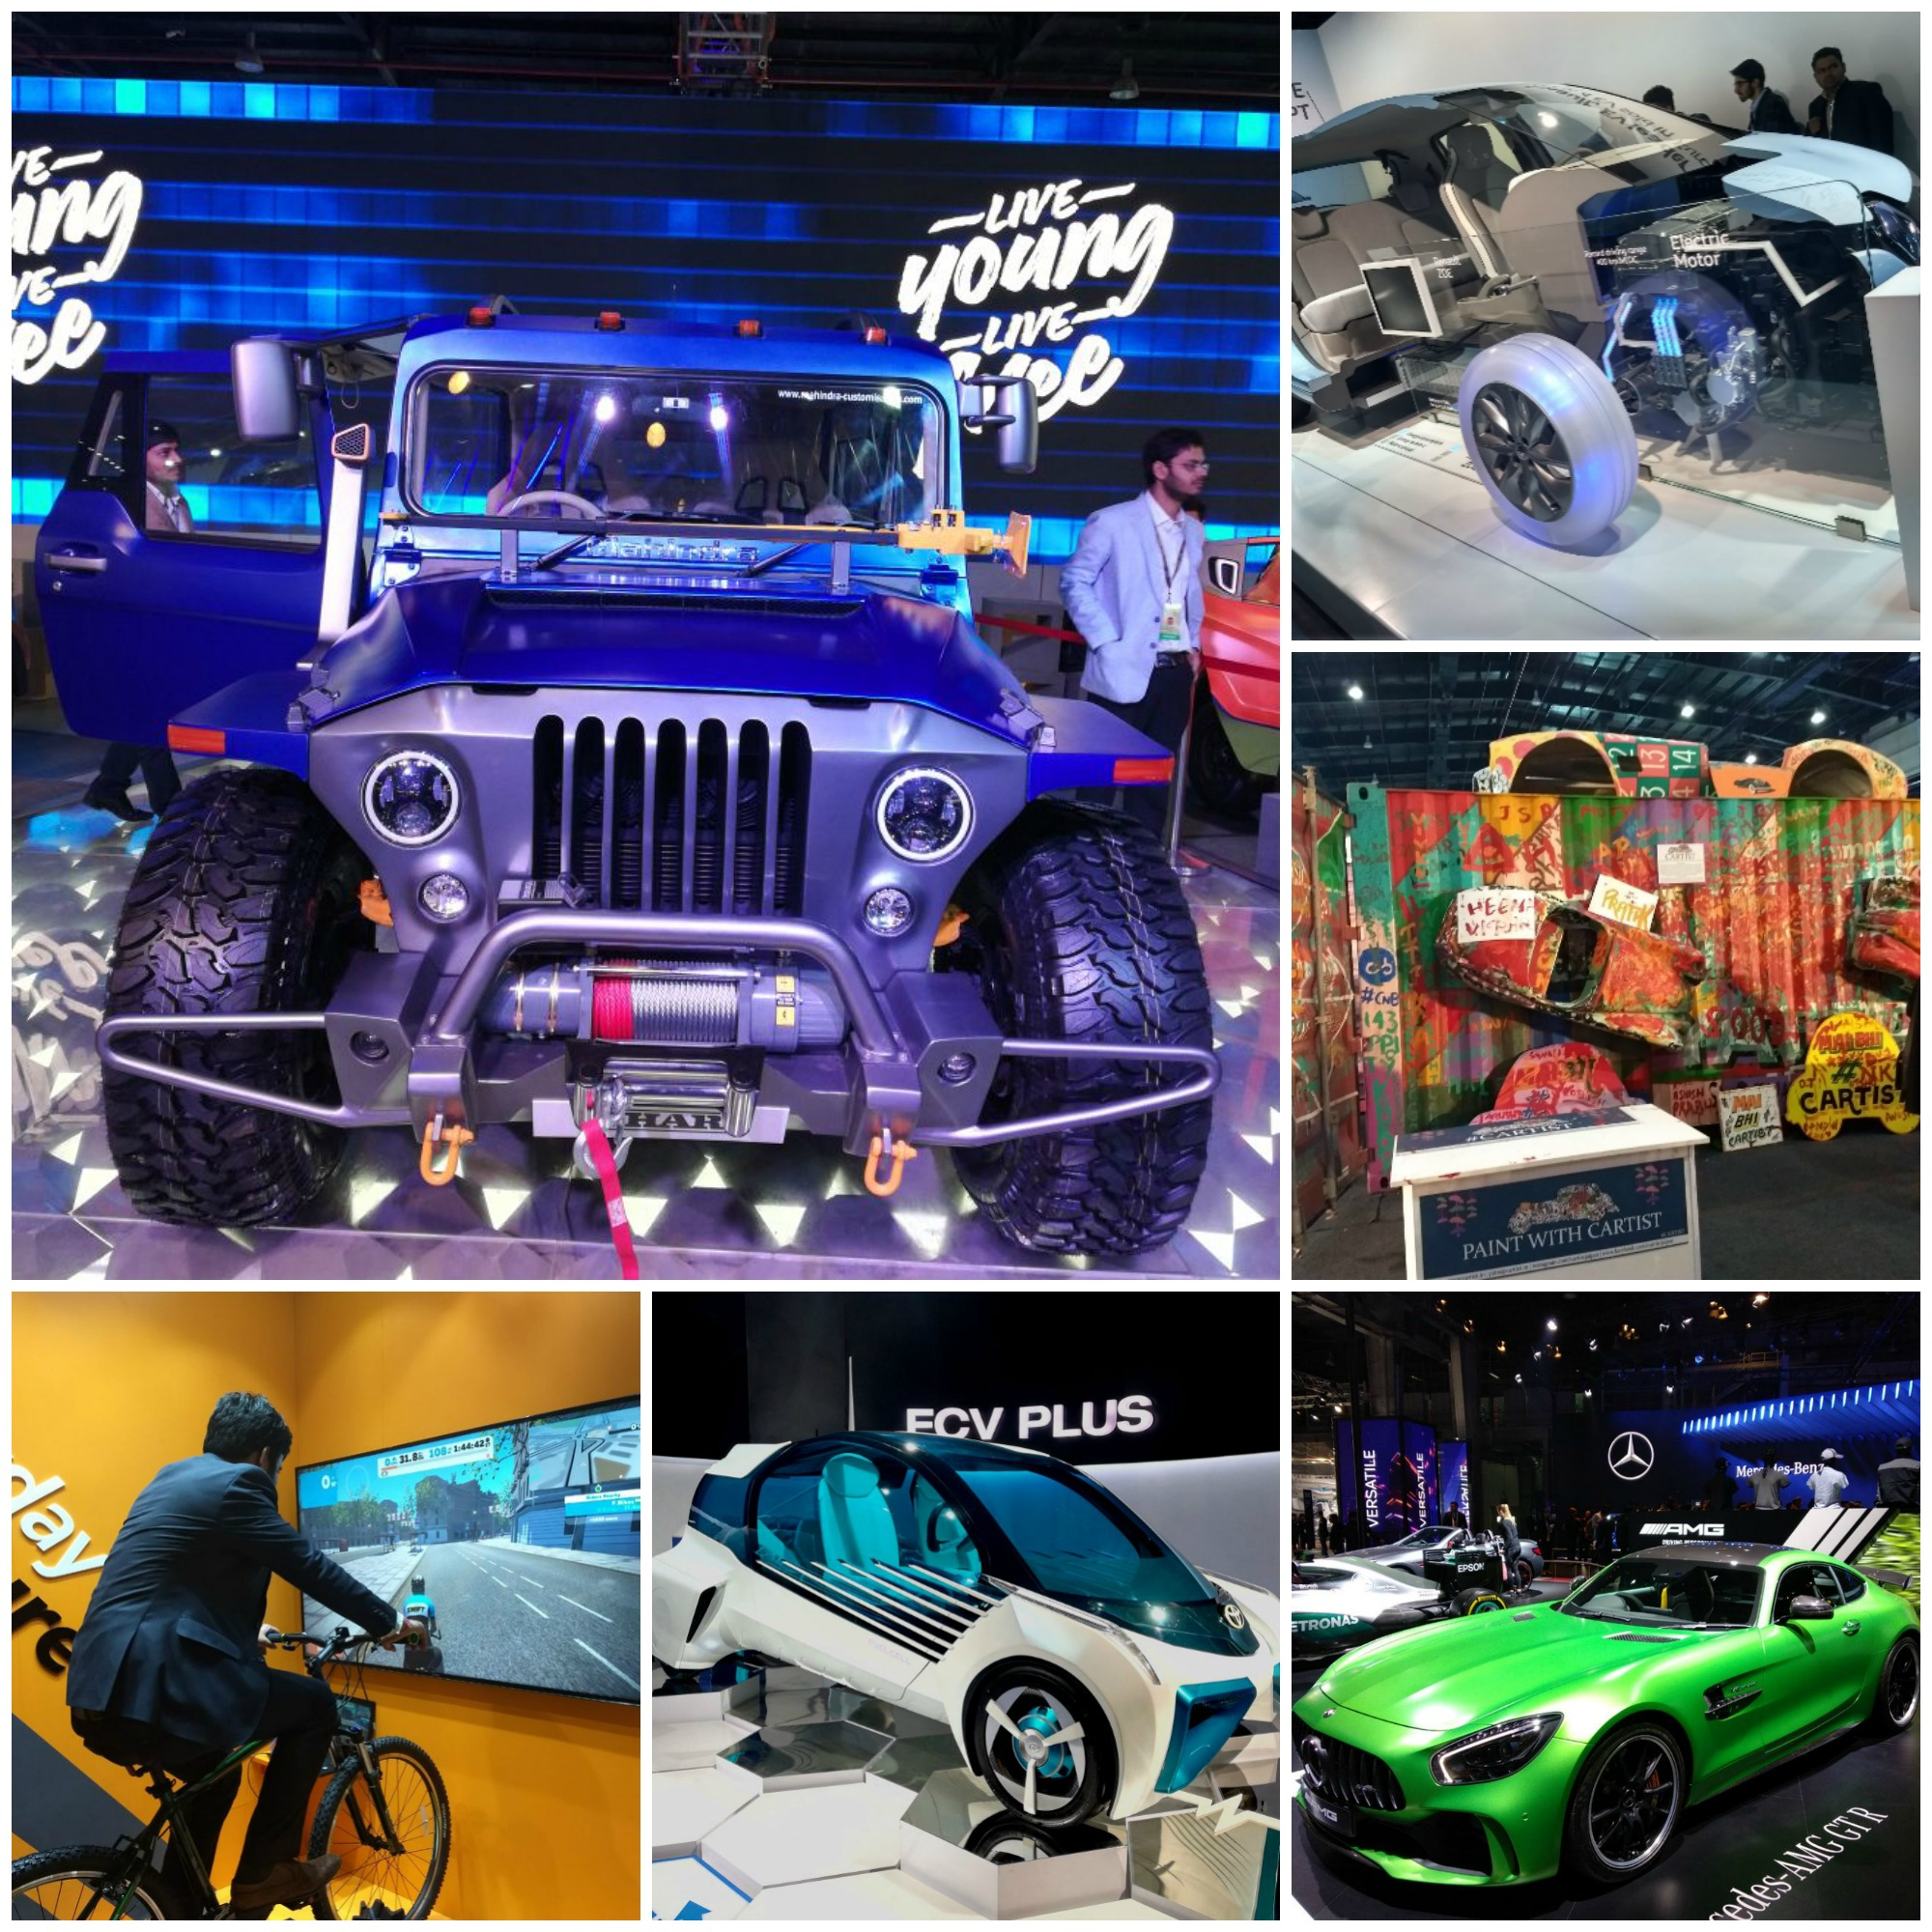 Auto Expo 2018 Highlights & Industry Trends - Telematics